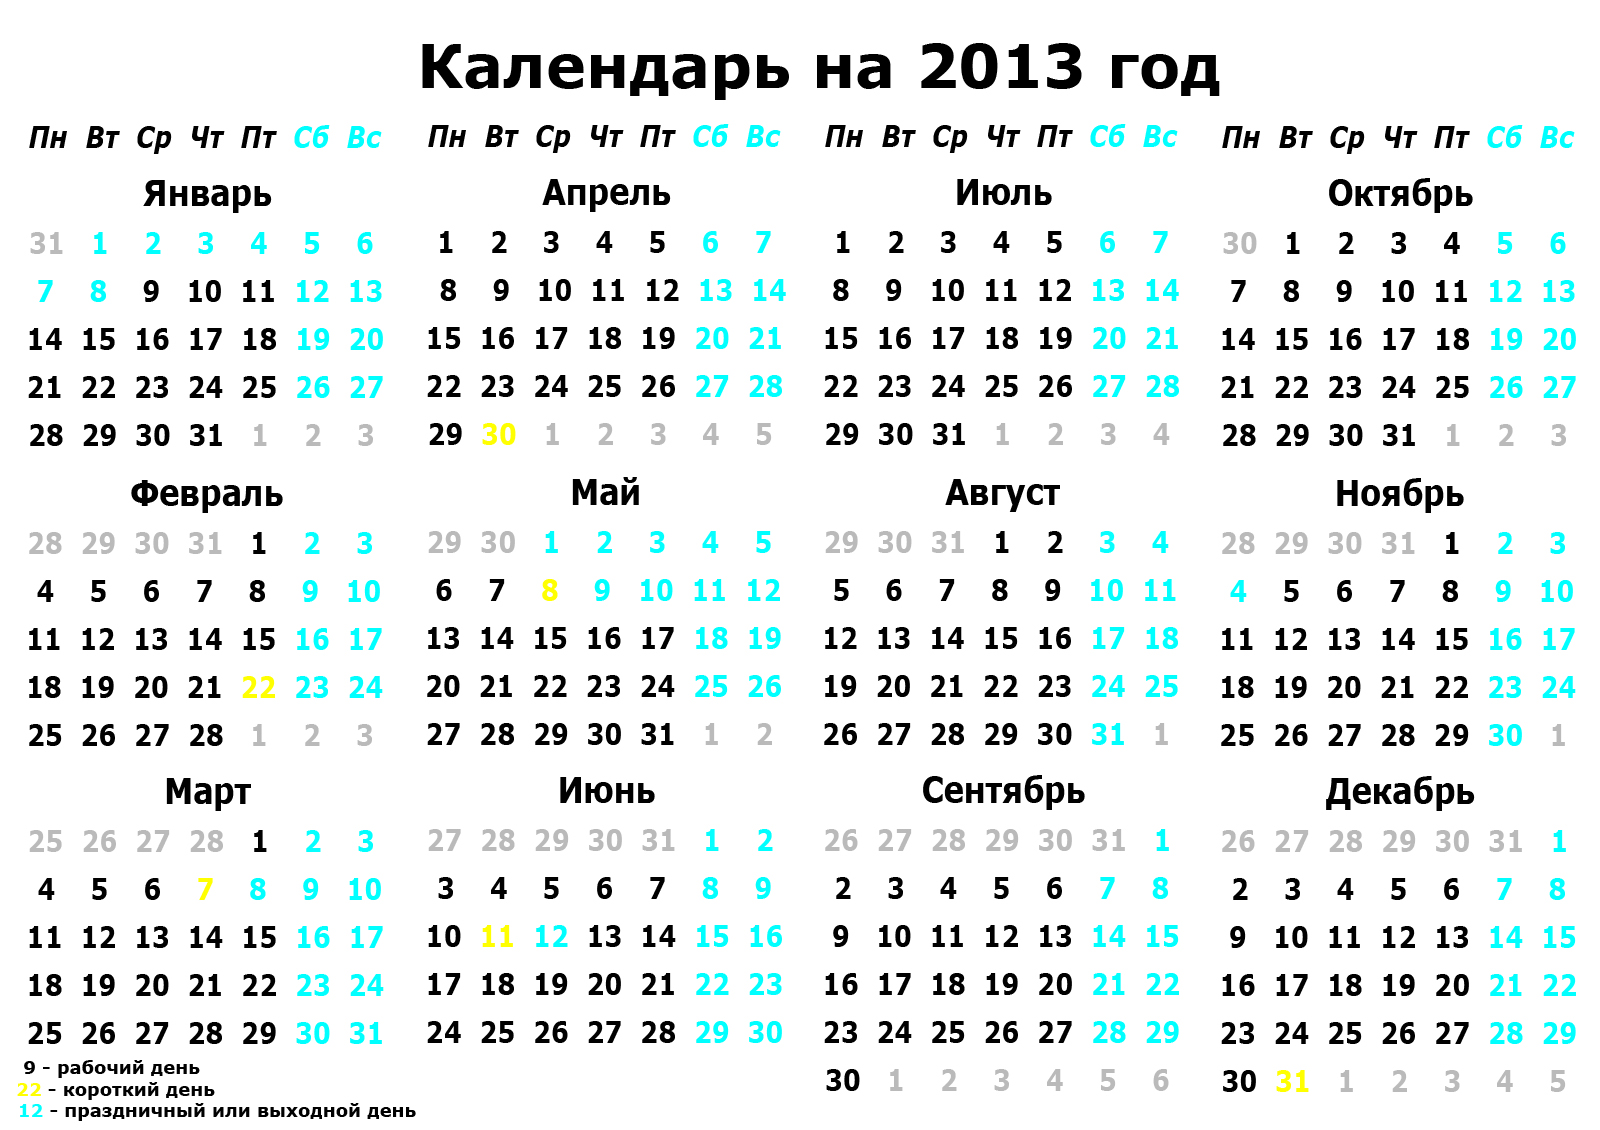 Small.  Календарь за 2013 год скачать - Календарь на 2013 год Download.  FB Share.